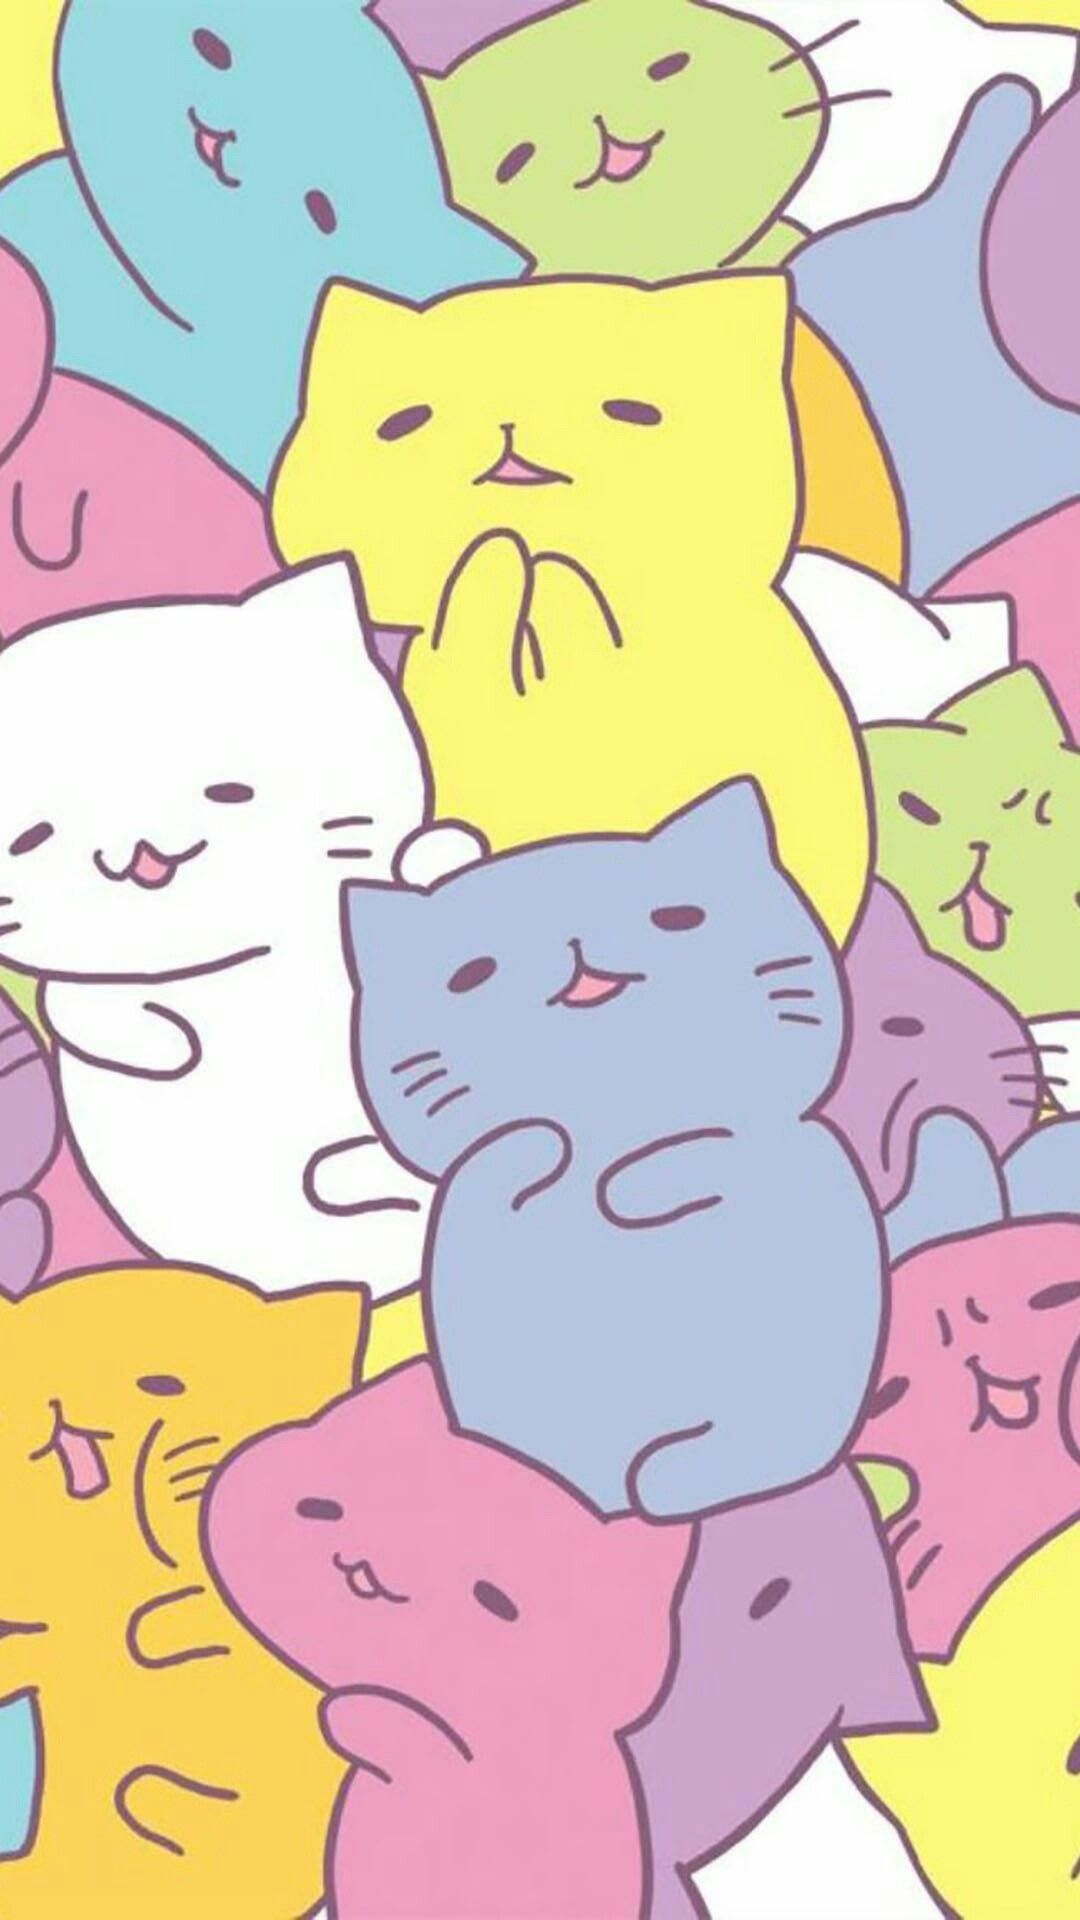 1080x1920 Pin by Esther on cats | Pinterest | Kawaii, Wallpaper and Kawaii ...